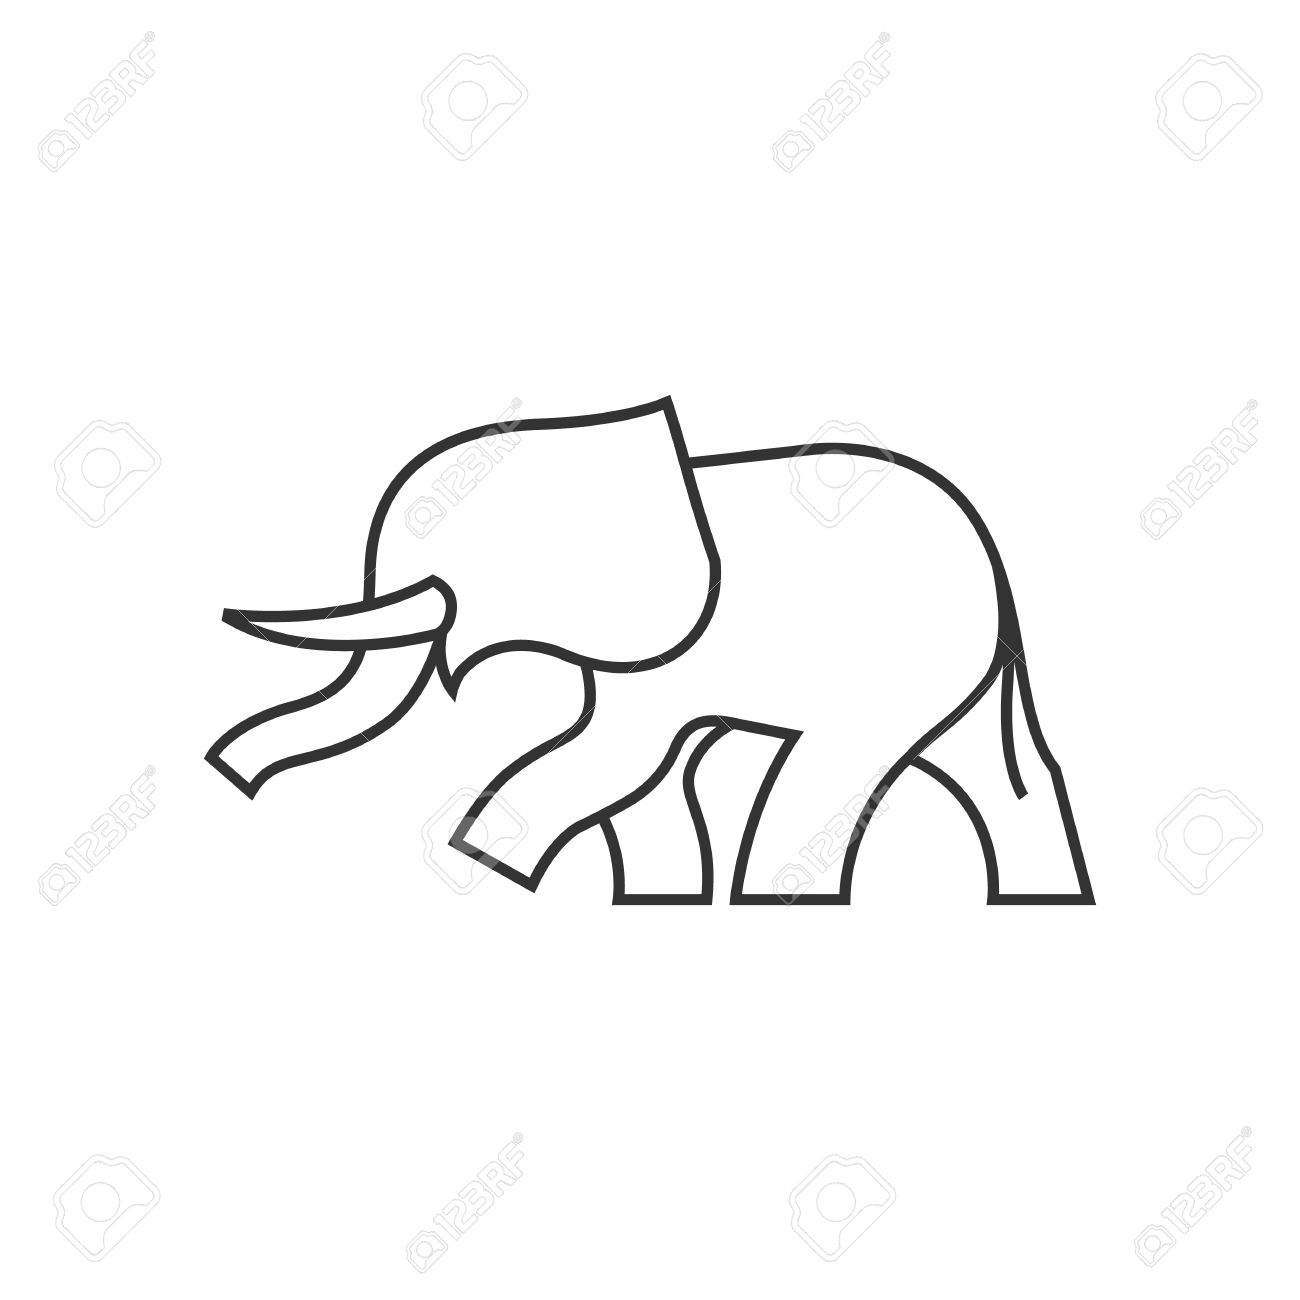 Abstract elephant outline